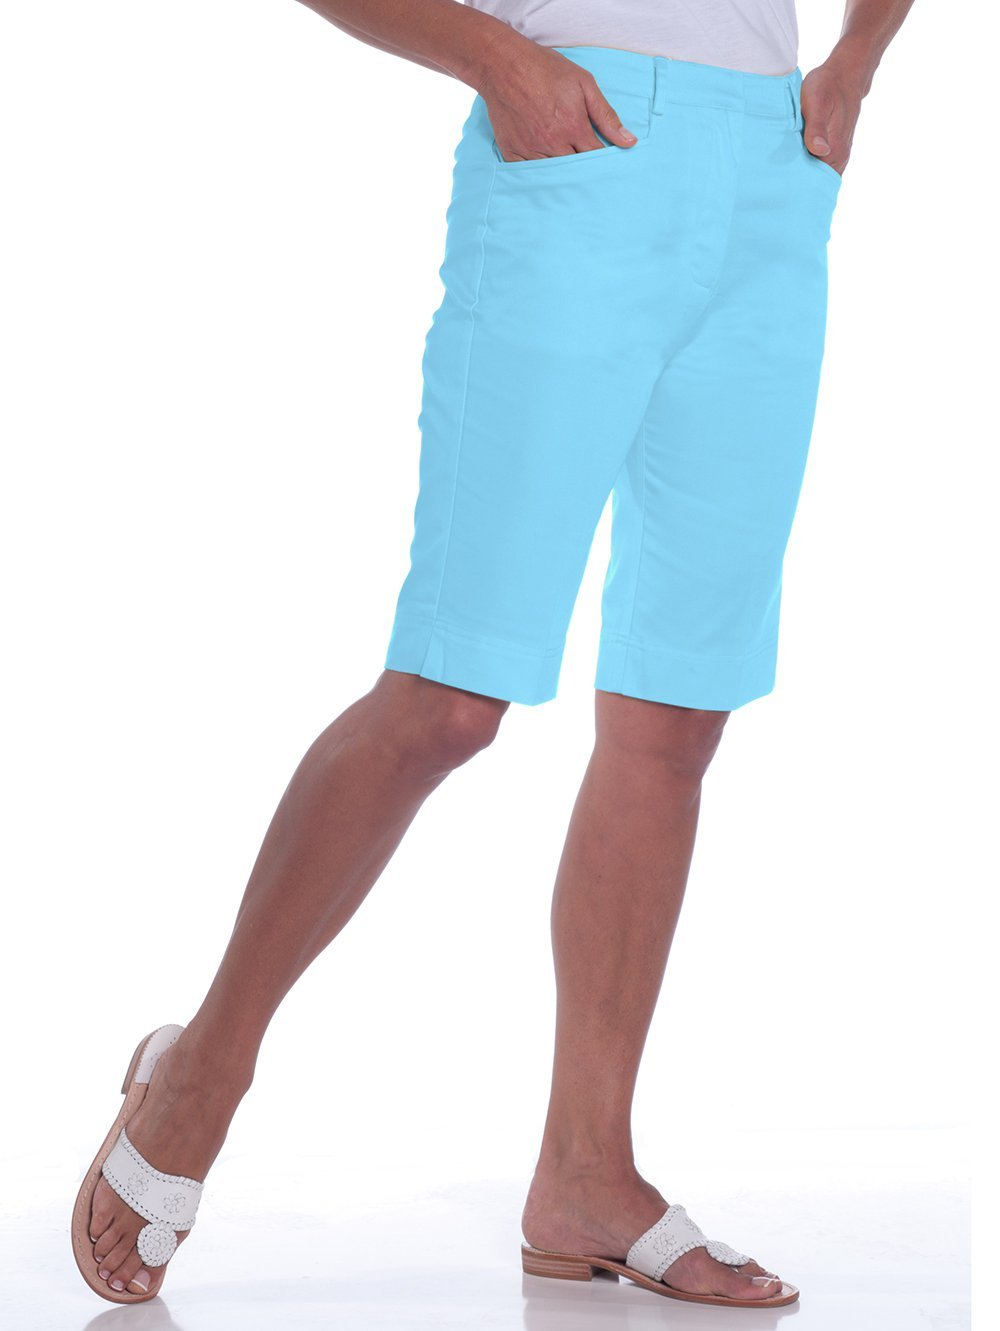 L-Pocket Bermuda Shorts</br>Atlantis  091